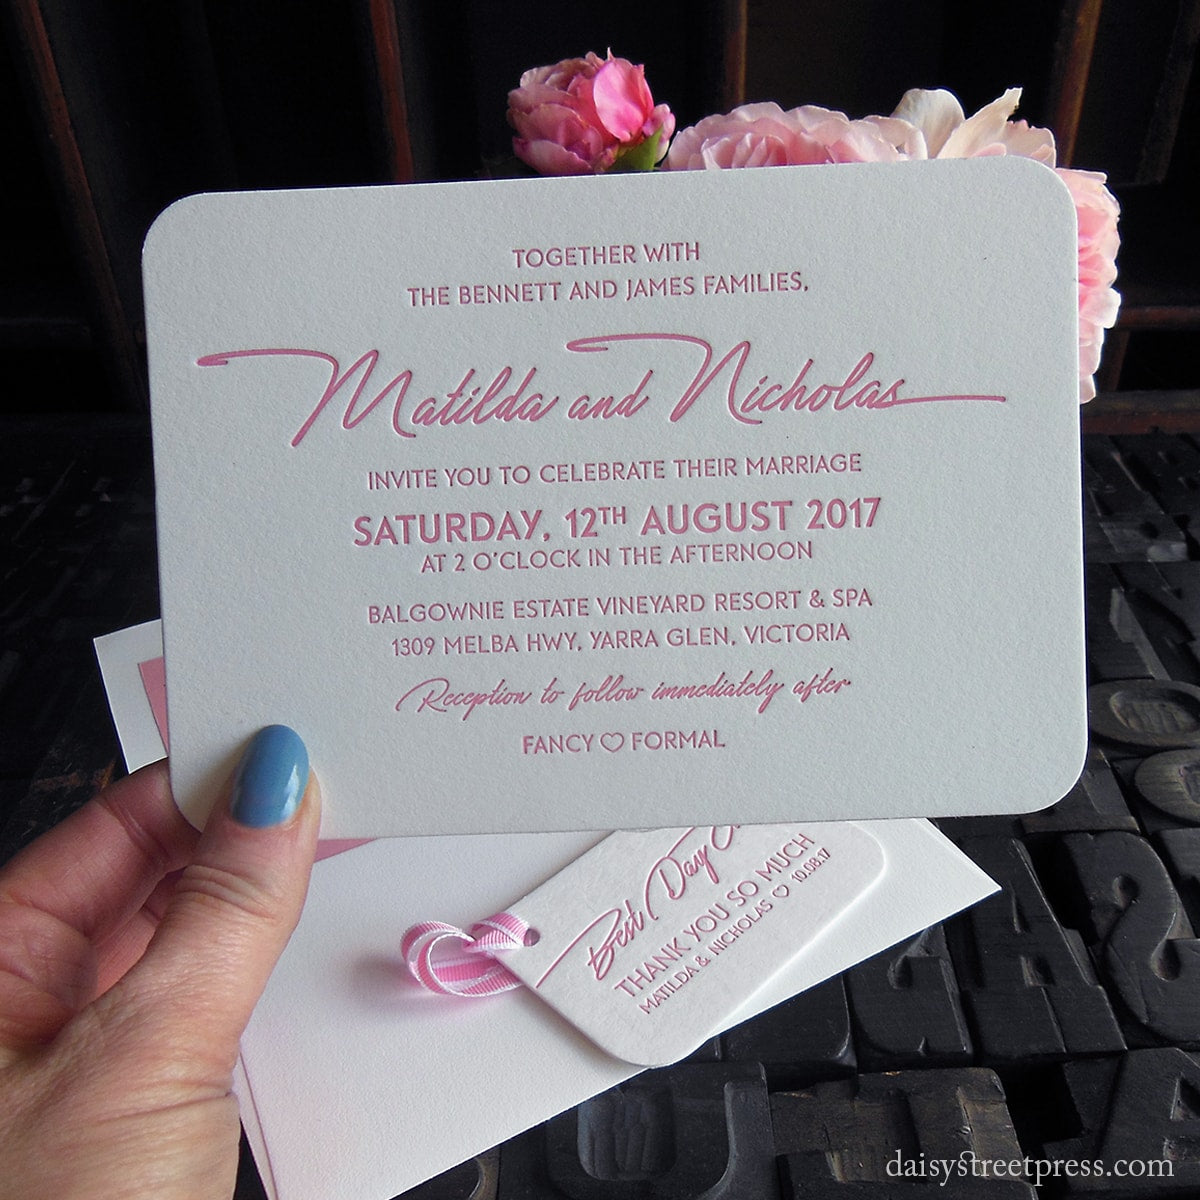 Daisy Street Press letterpress print wedding invites and stationery